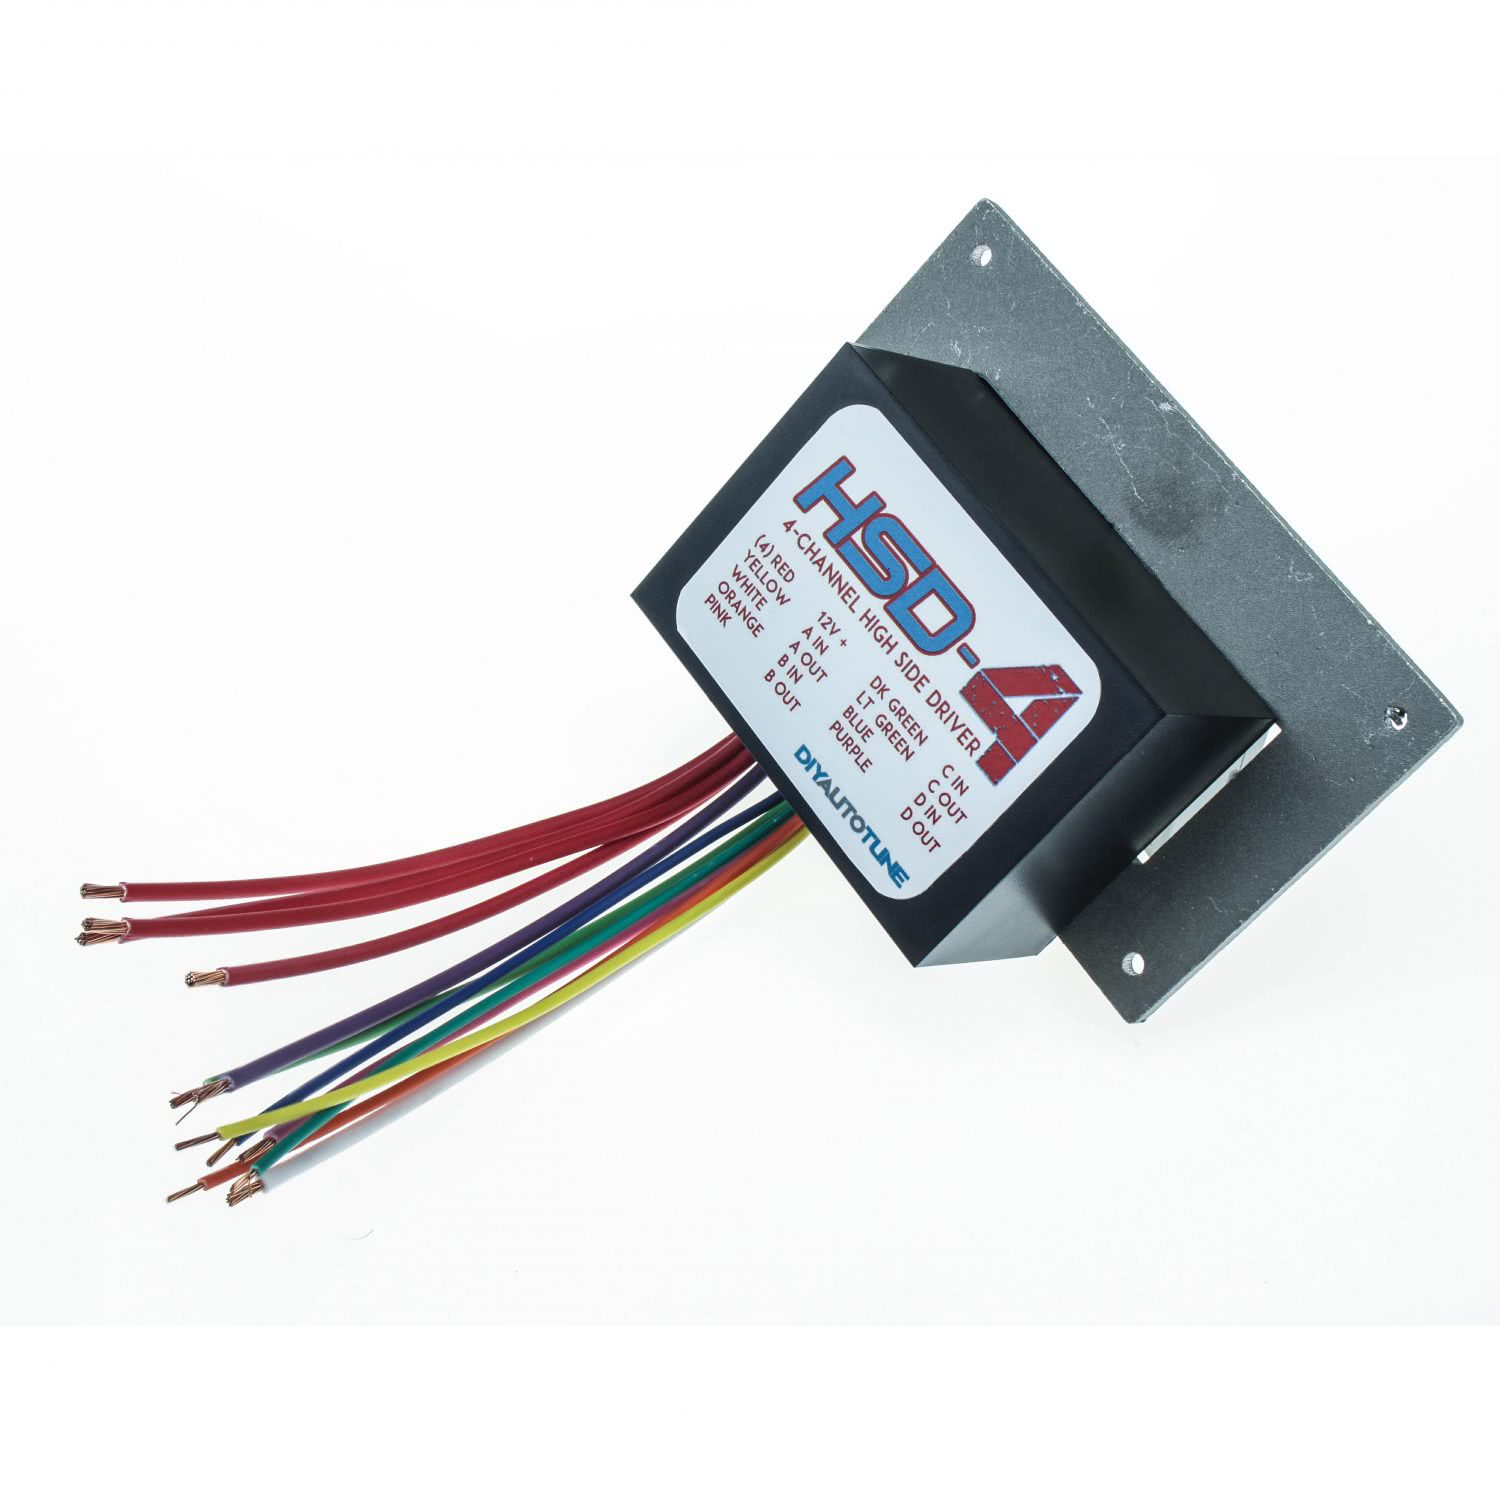 Hsd 4 High Side Driver Module Shop Talk Forum Solid State Relay Do You Have A Bunch Of Solenoids That Need 12 V Power And To Be Switched Faster Than Normal Could Handle This With Bank